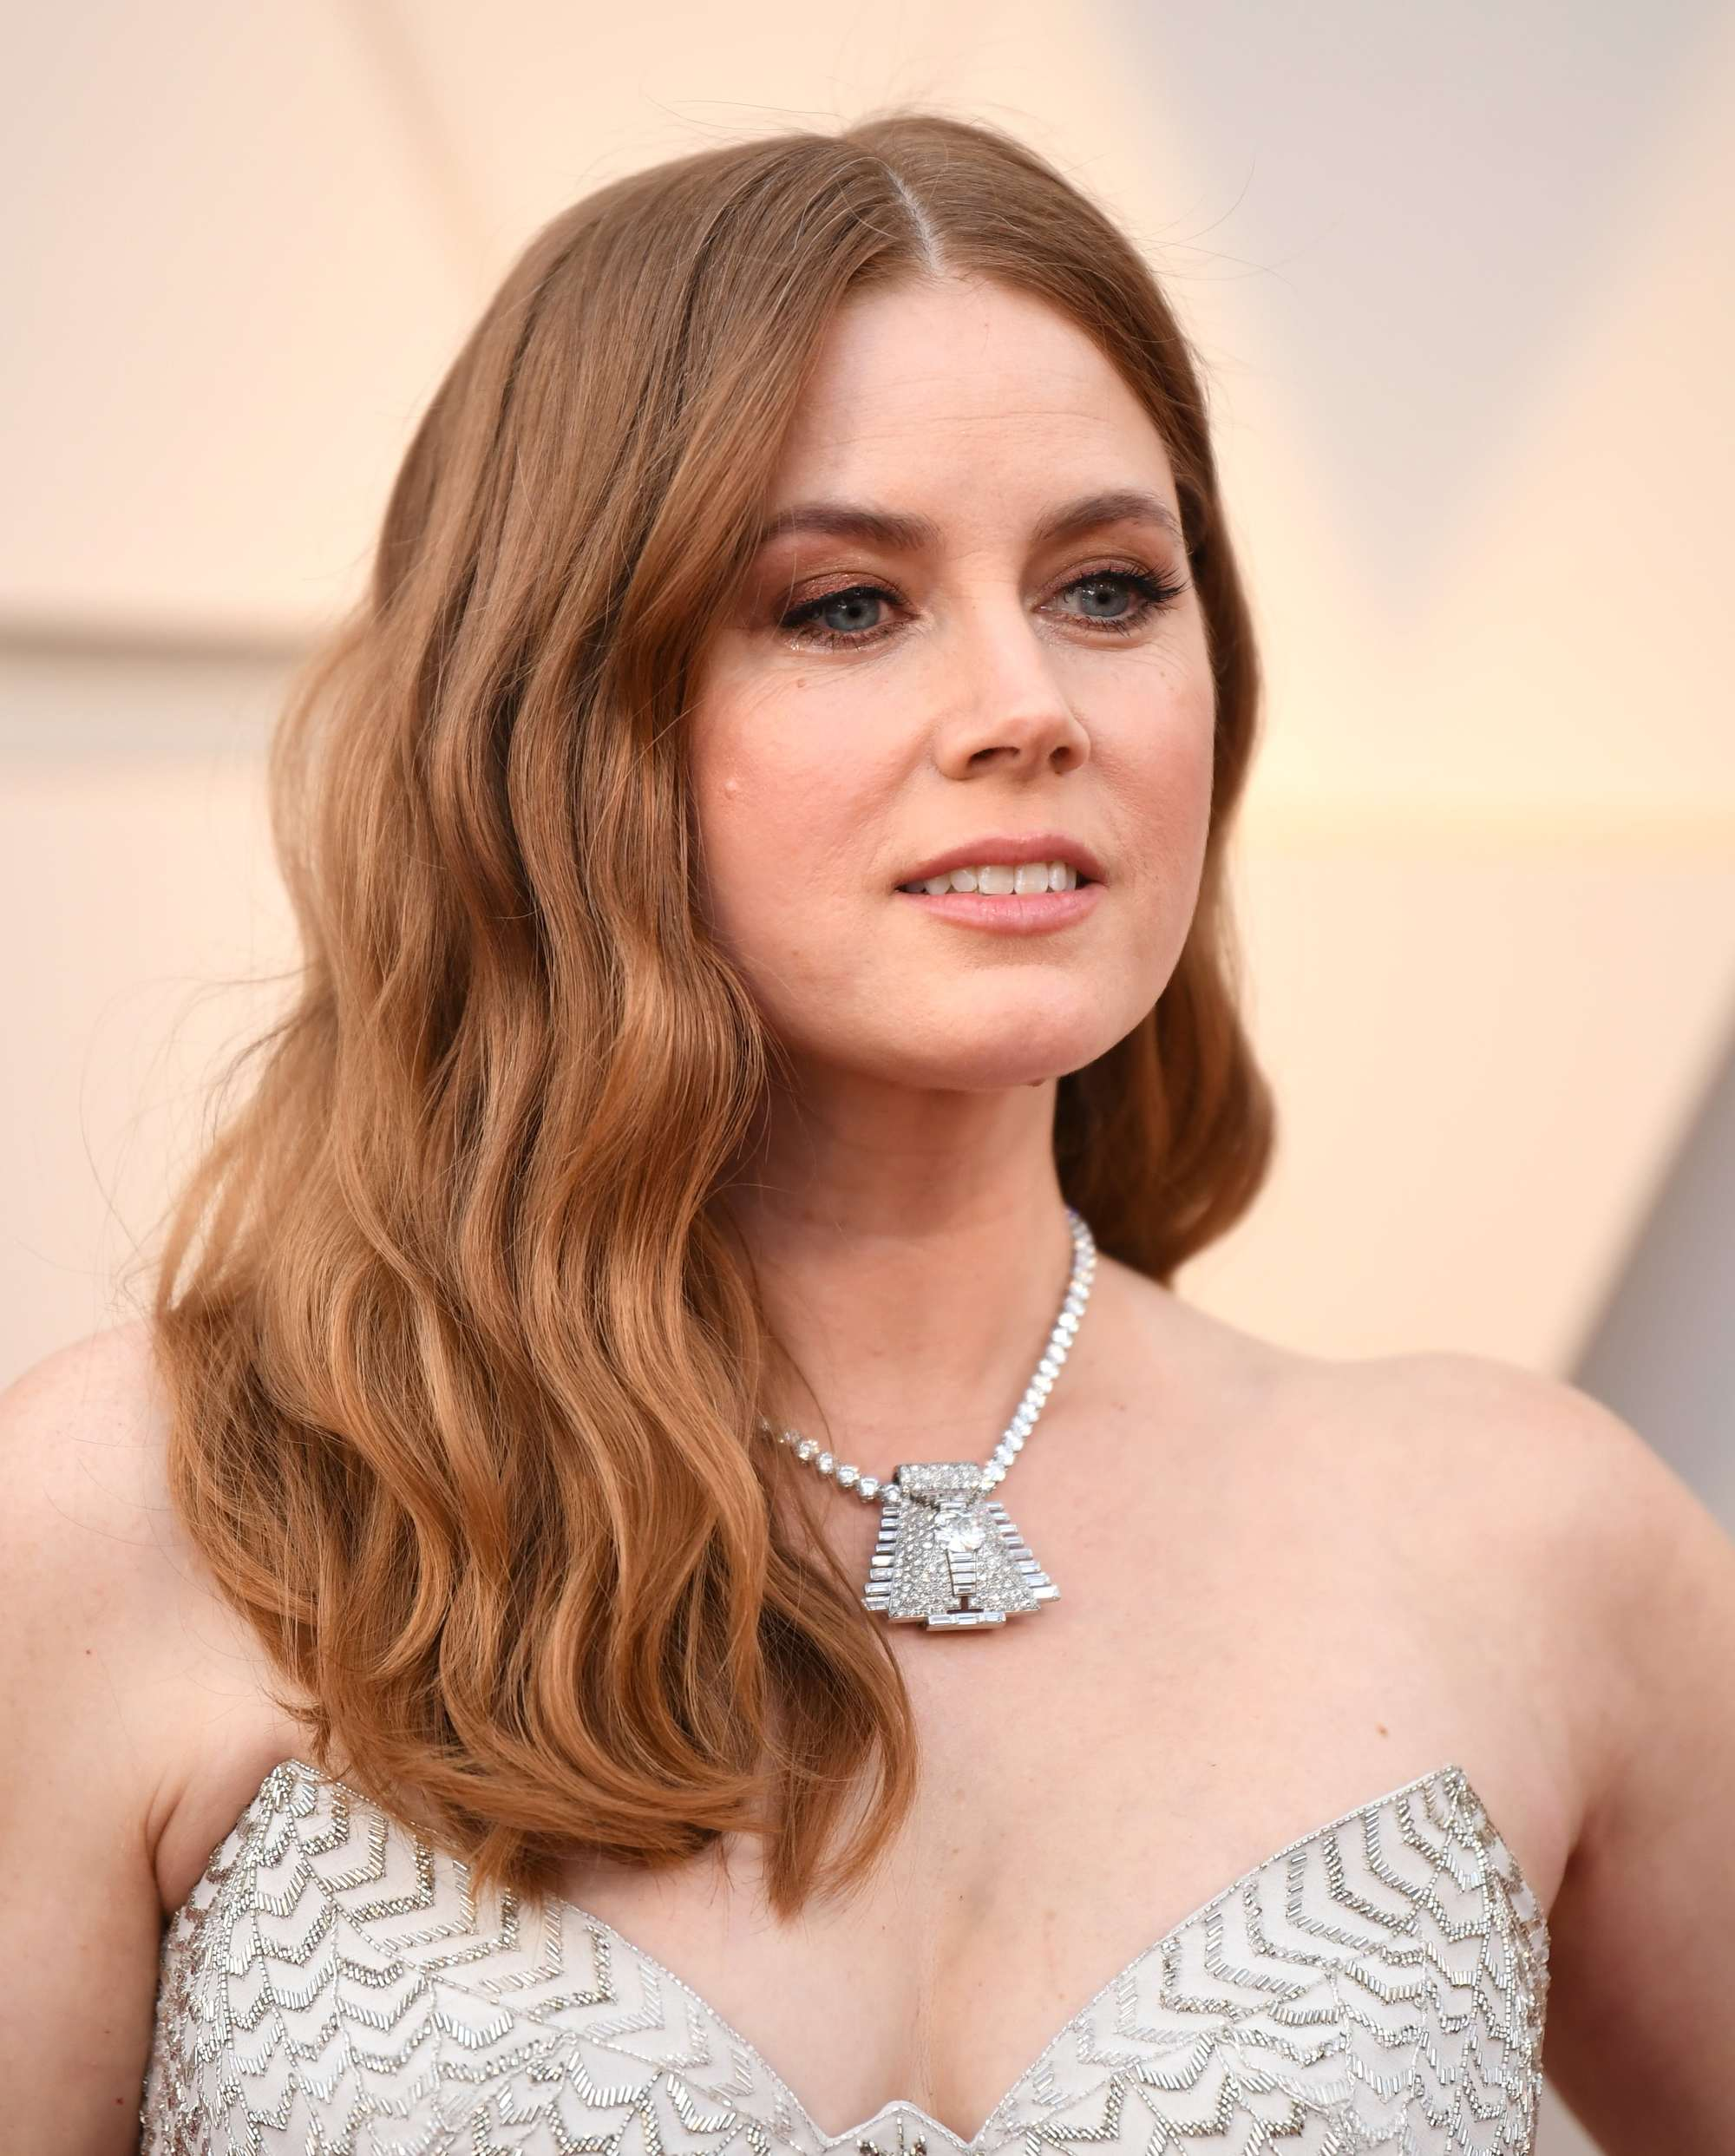 Oscars 2019 hairstyles: Amy Adams at the 2019 Oscars with auburn hair worn in sideswept beachy waves